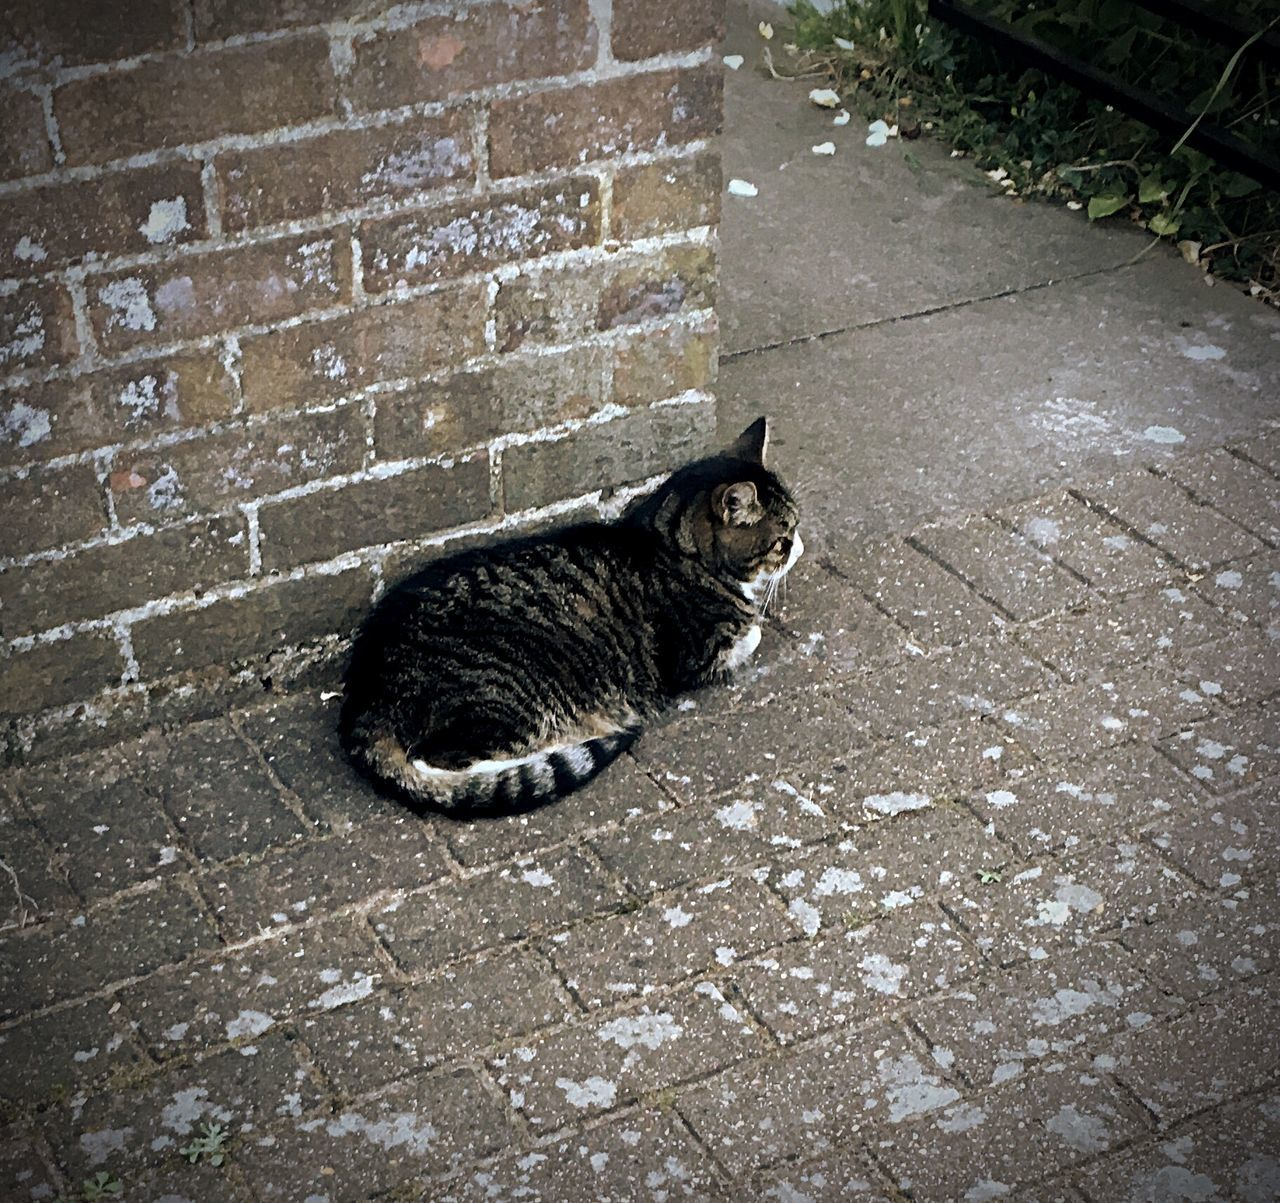 domestic cat, feline, cat, pets, domestic animals, street, one animal, animal themes, outdoors, mammal, sitting, no people, day